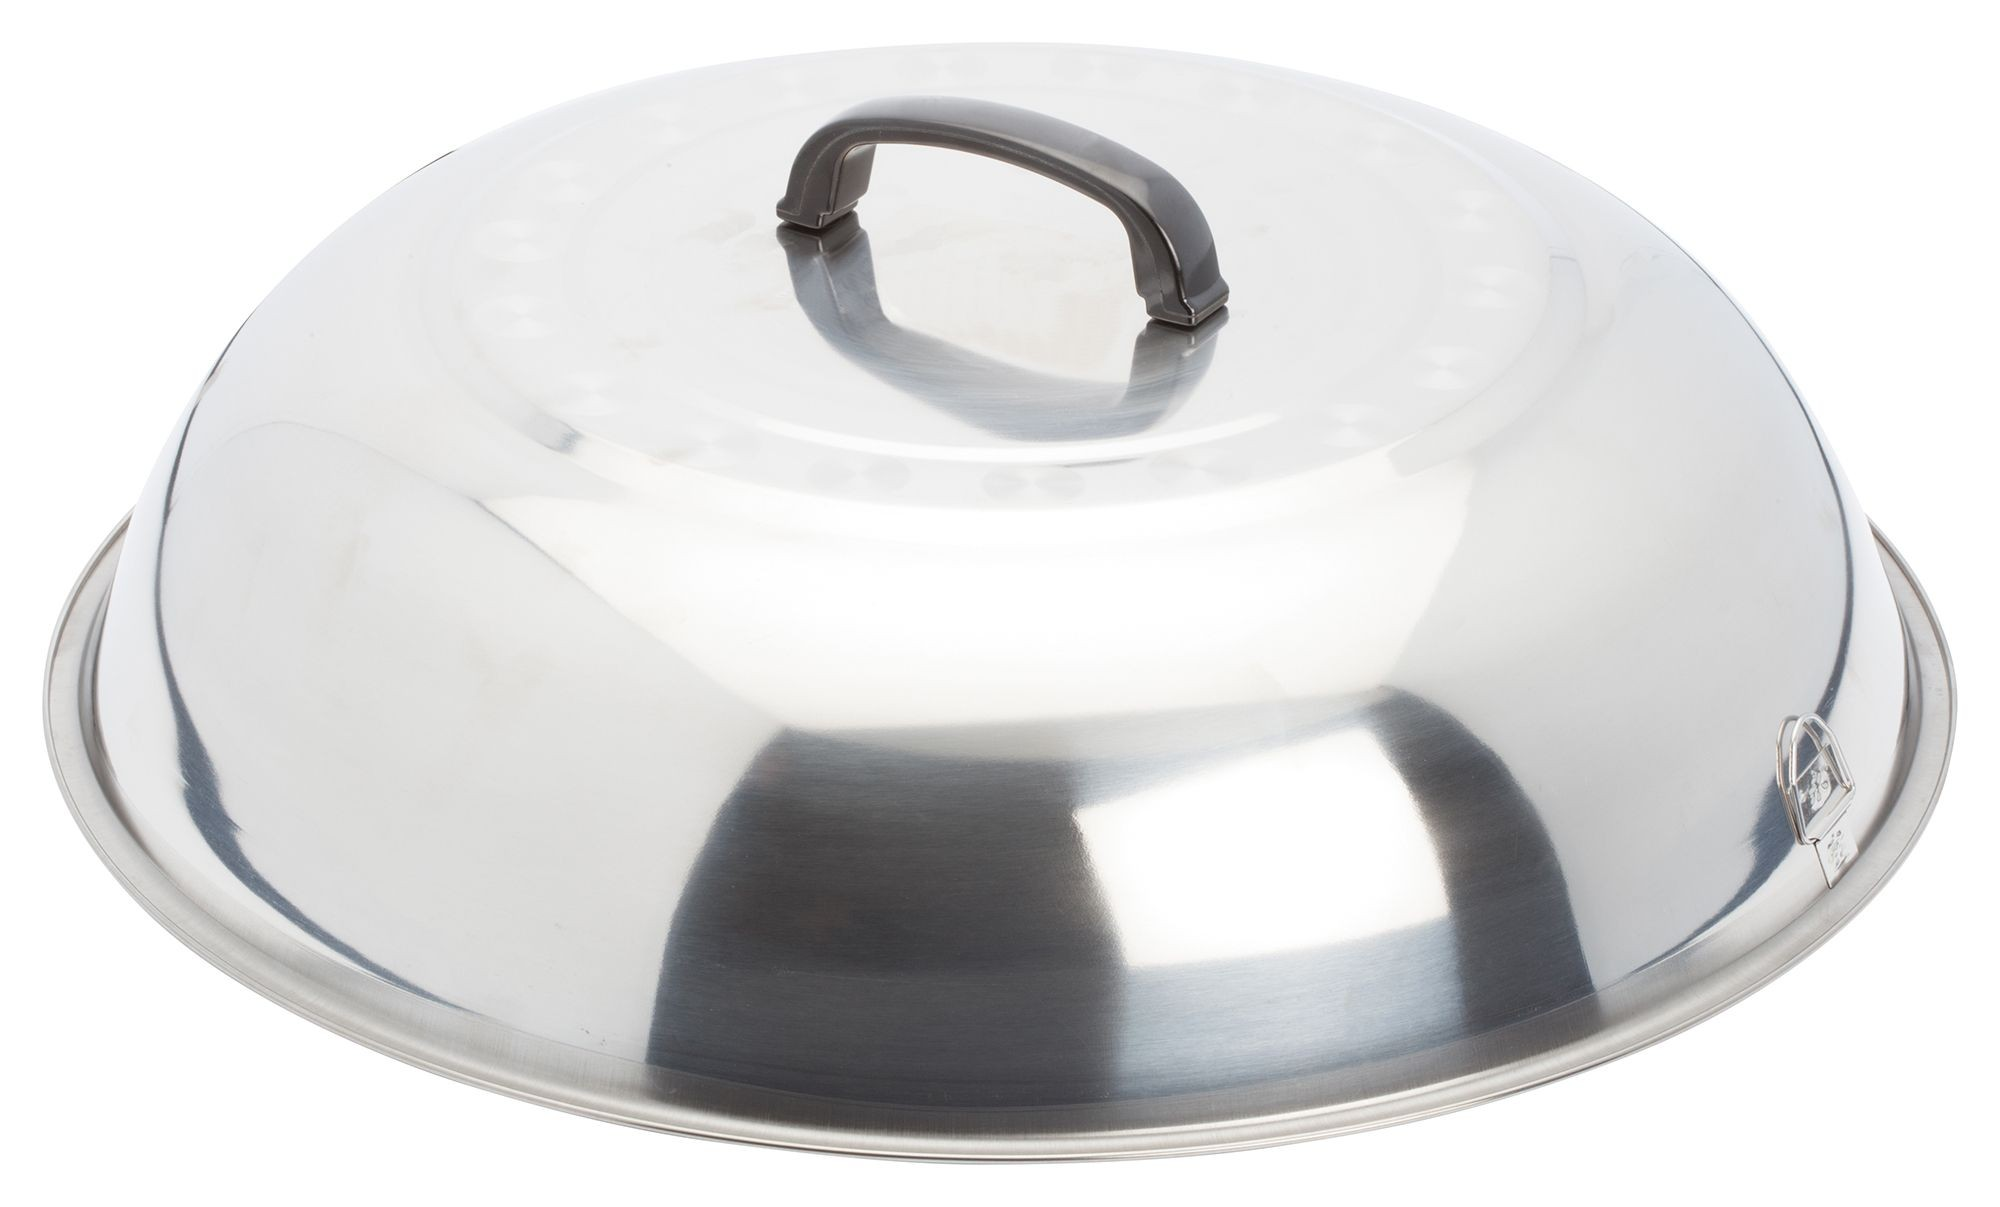 Winco WKCS-18 Stainless Steel Wok Cover 17-3/4""